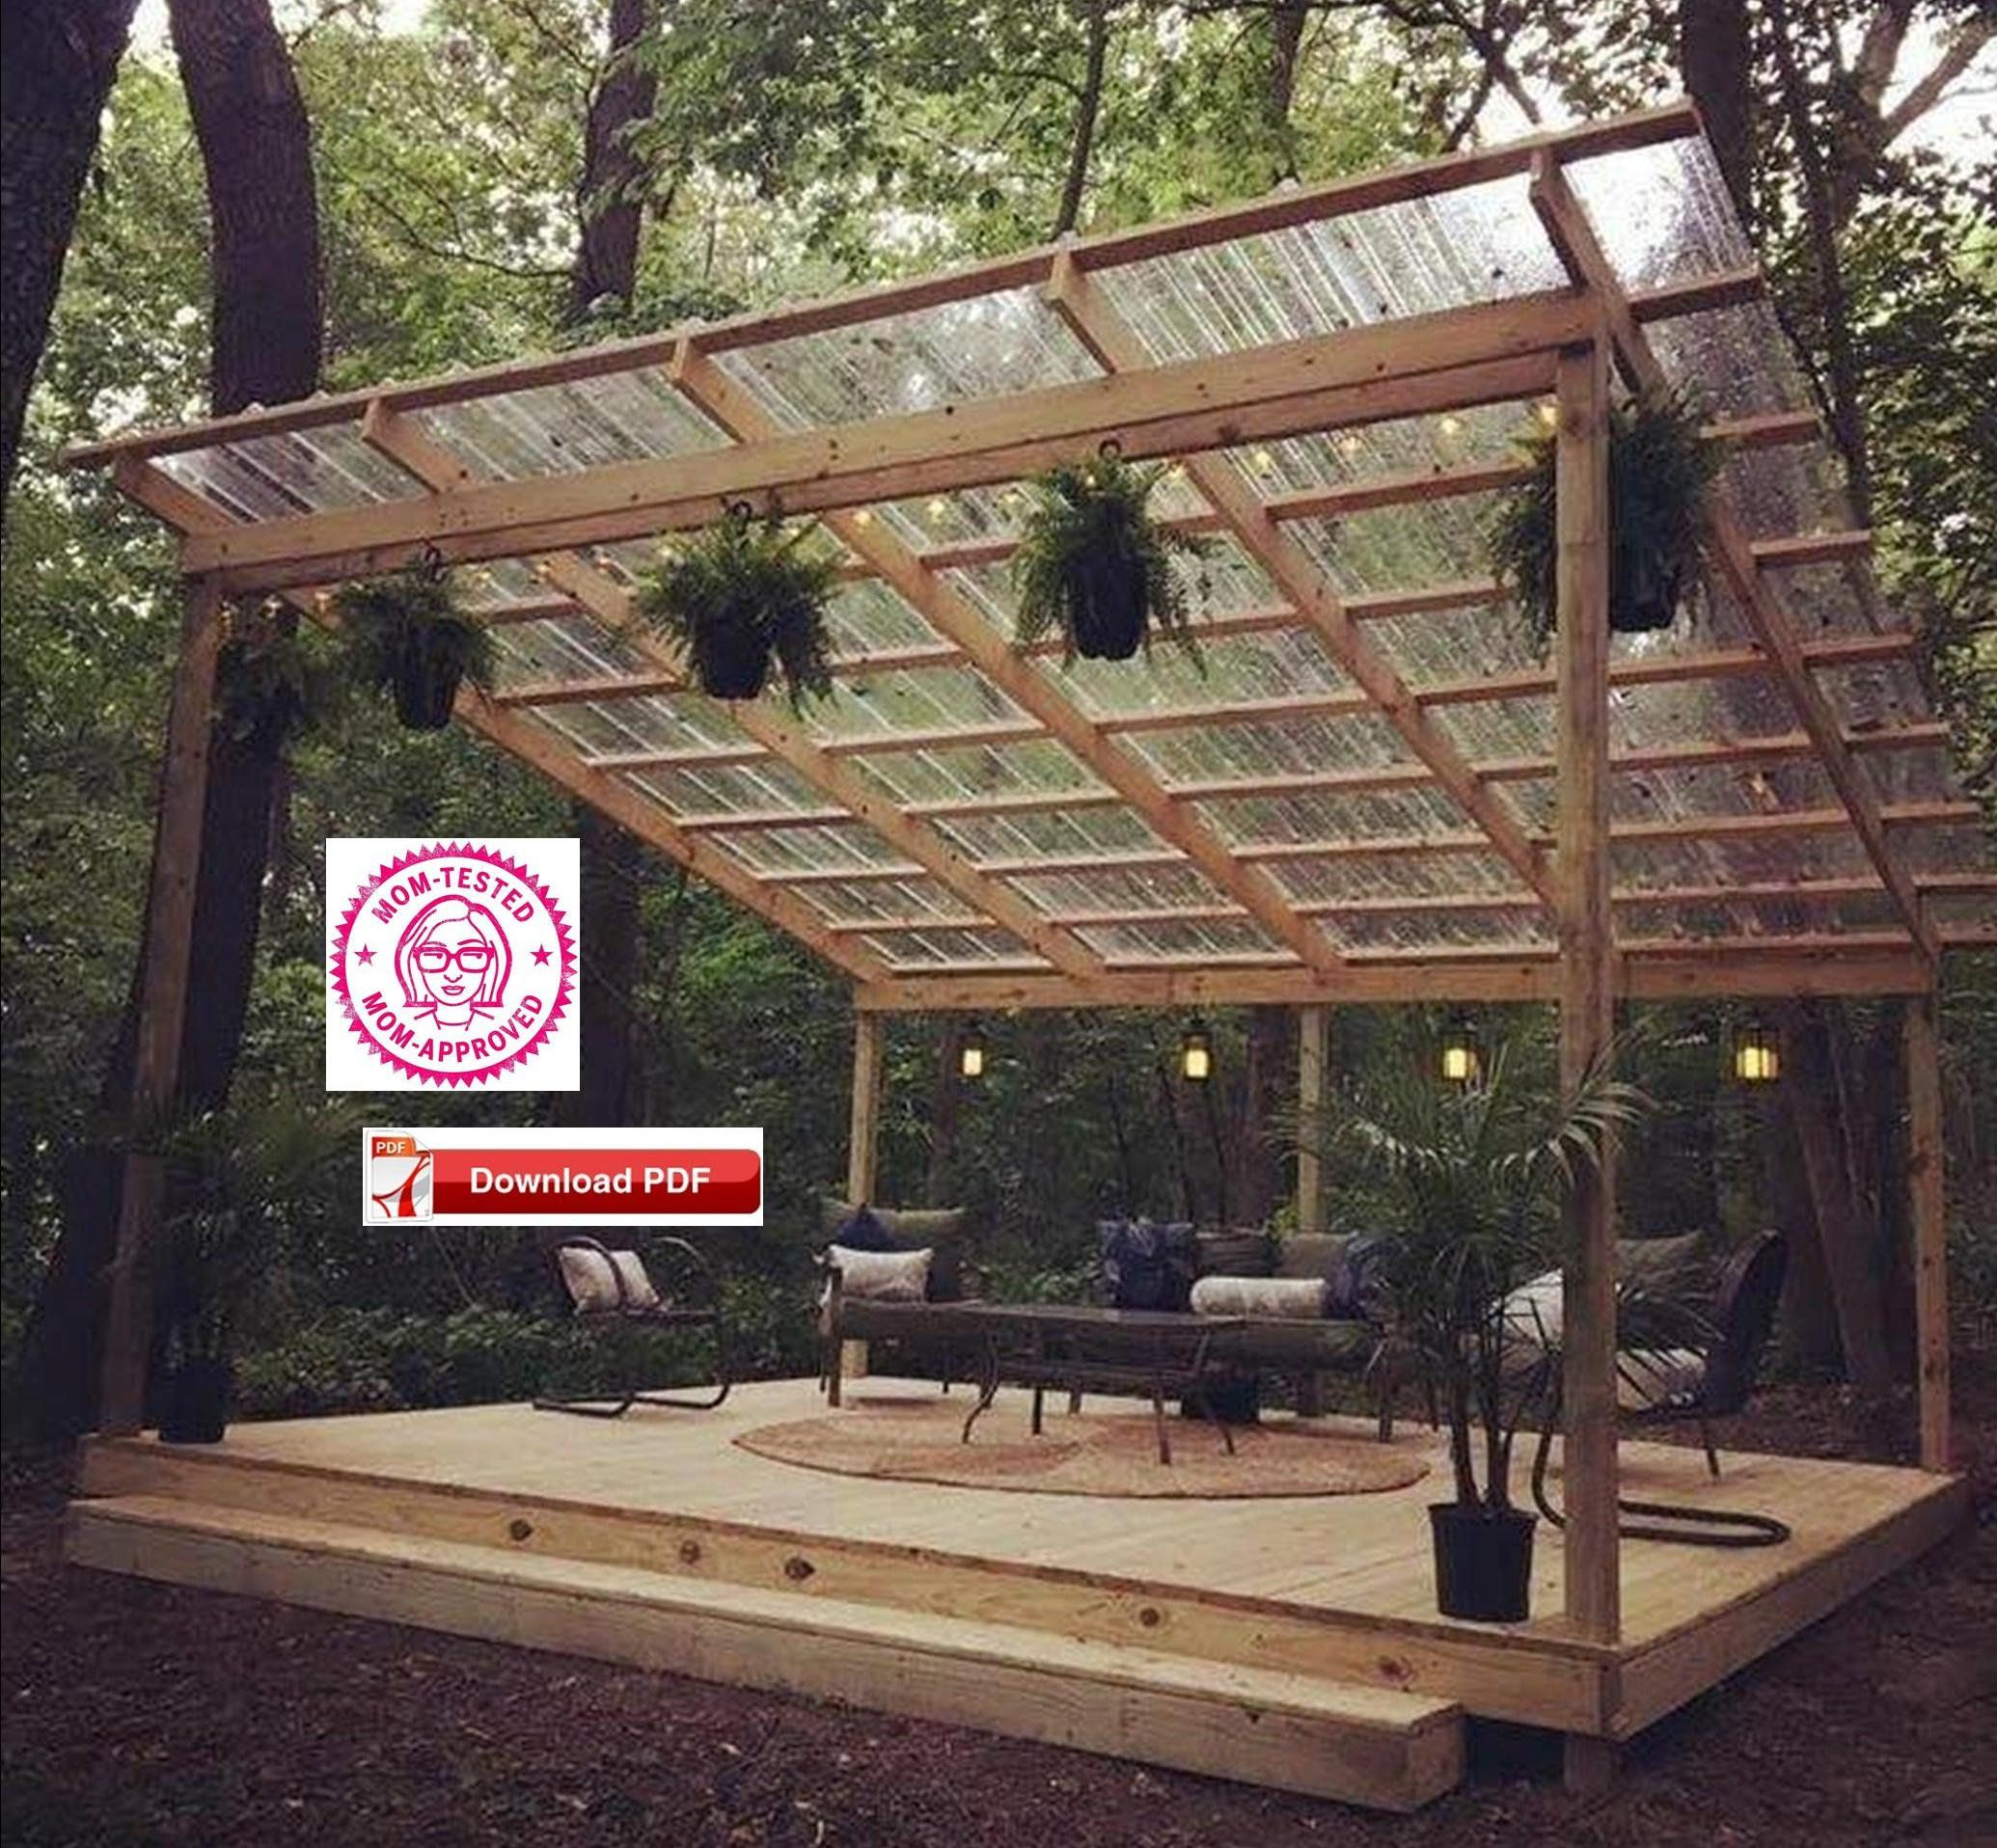 Covered Deck Plan Covered Patio Plan Covered Shelter Etsy Patio Plans Pavilion Plans Wood Deck Plans